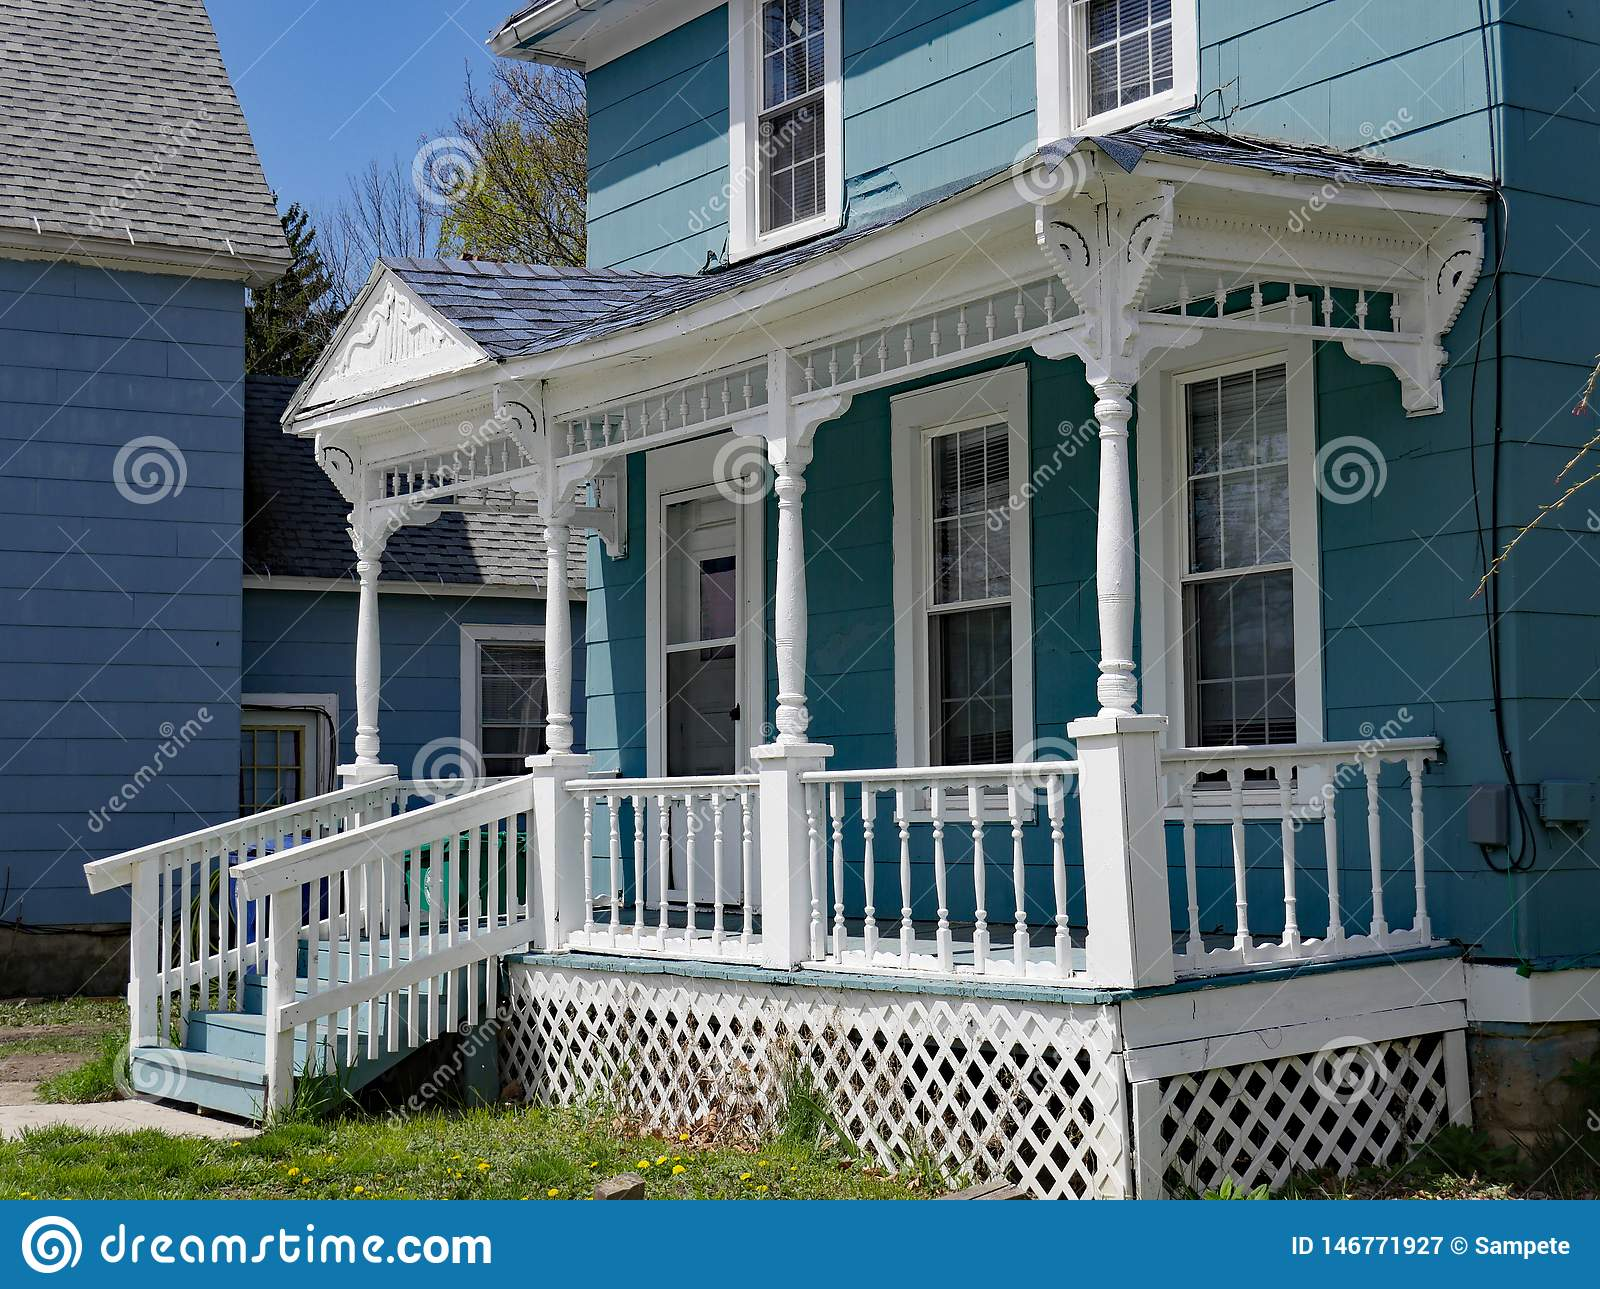 House with old fashioned wood spindle railing on porch